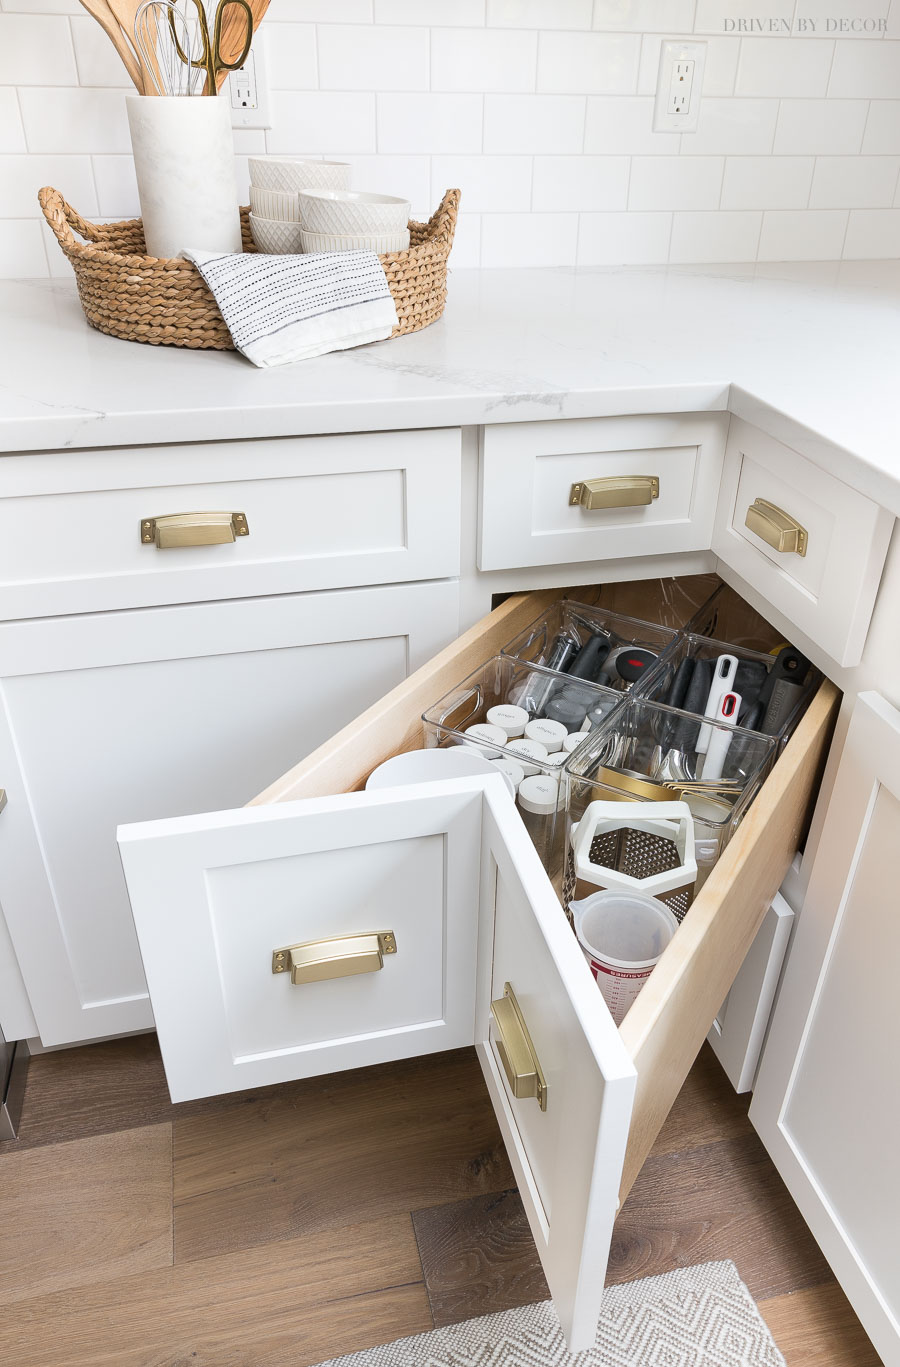 Cabinet Storage Amp Organization Ideas From Our New Kitchen